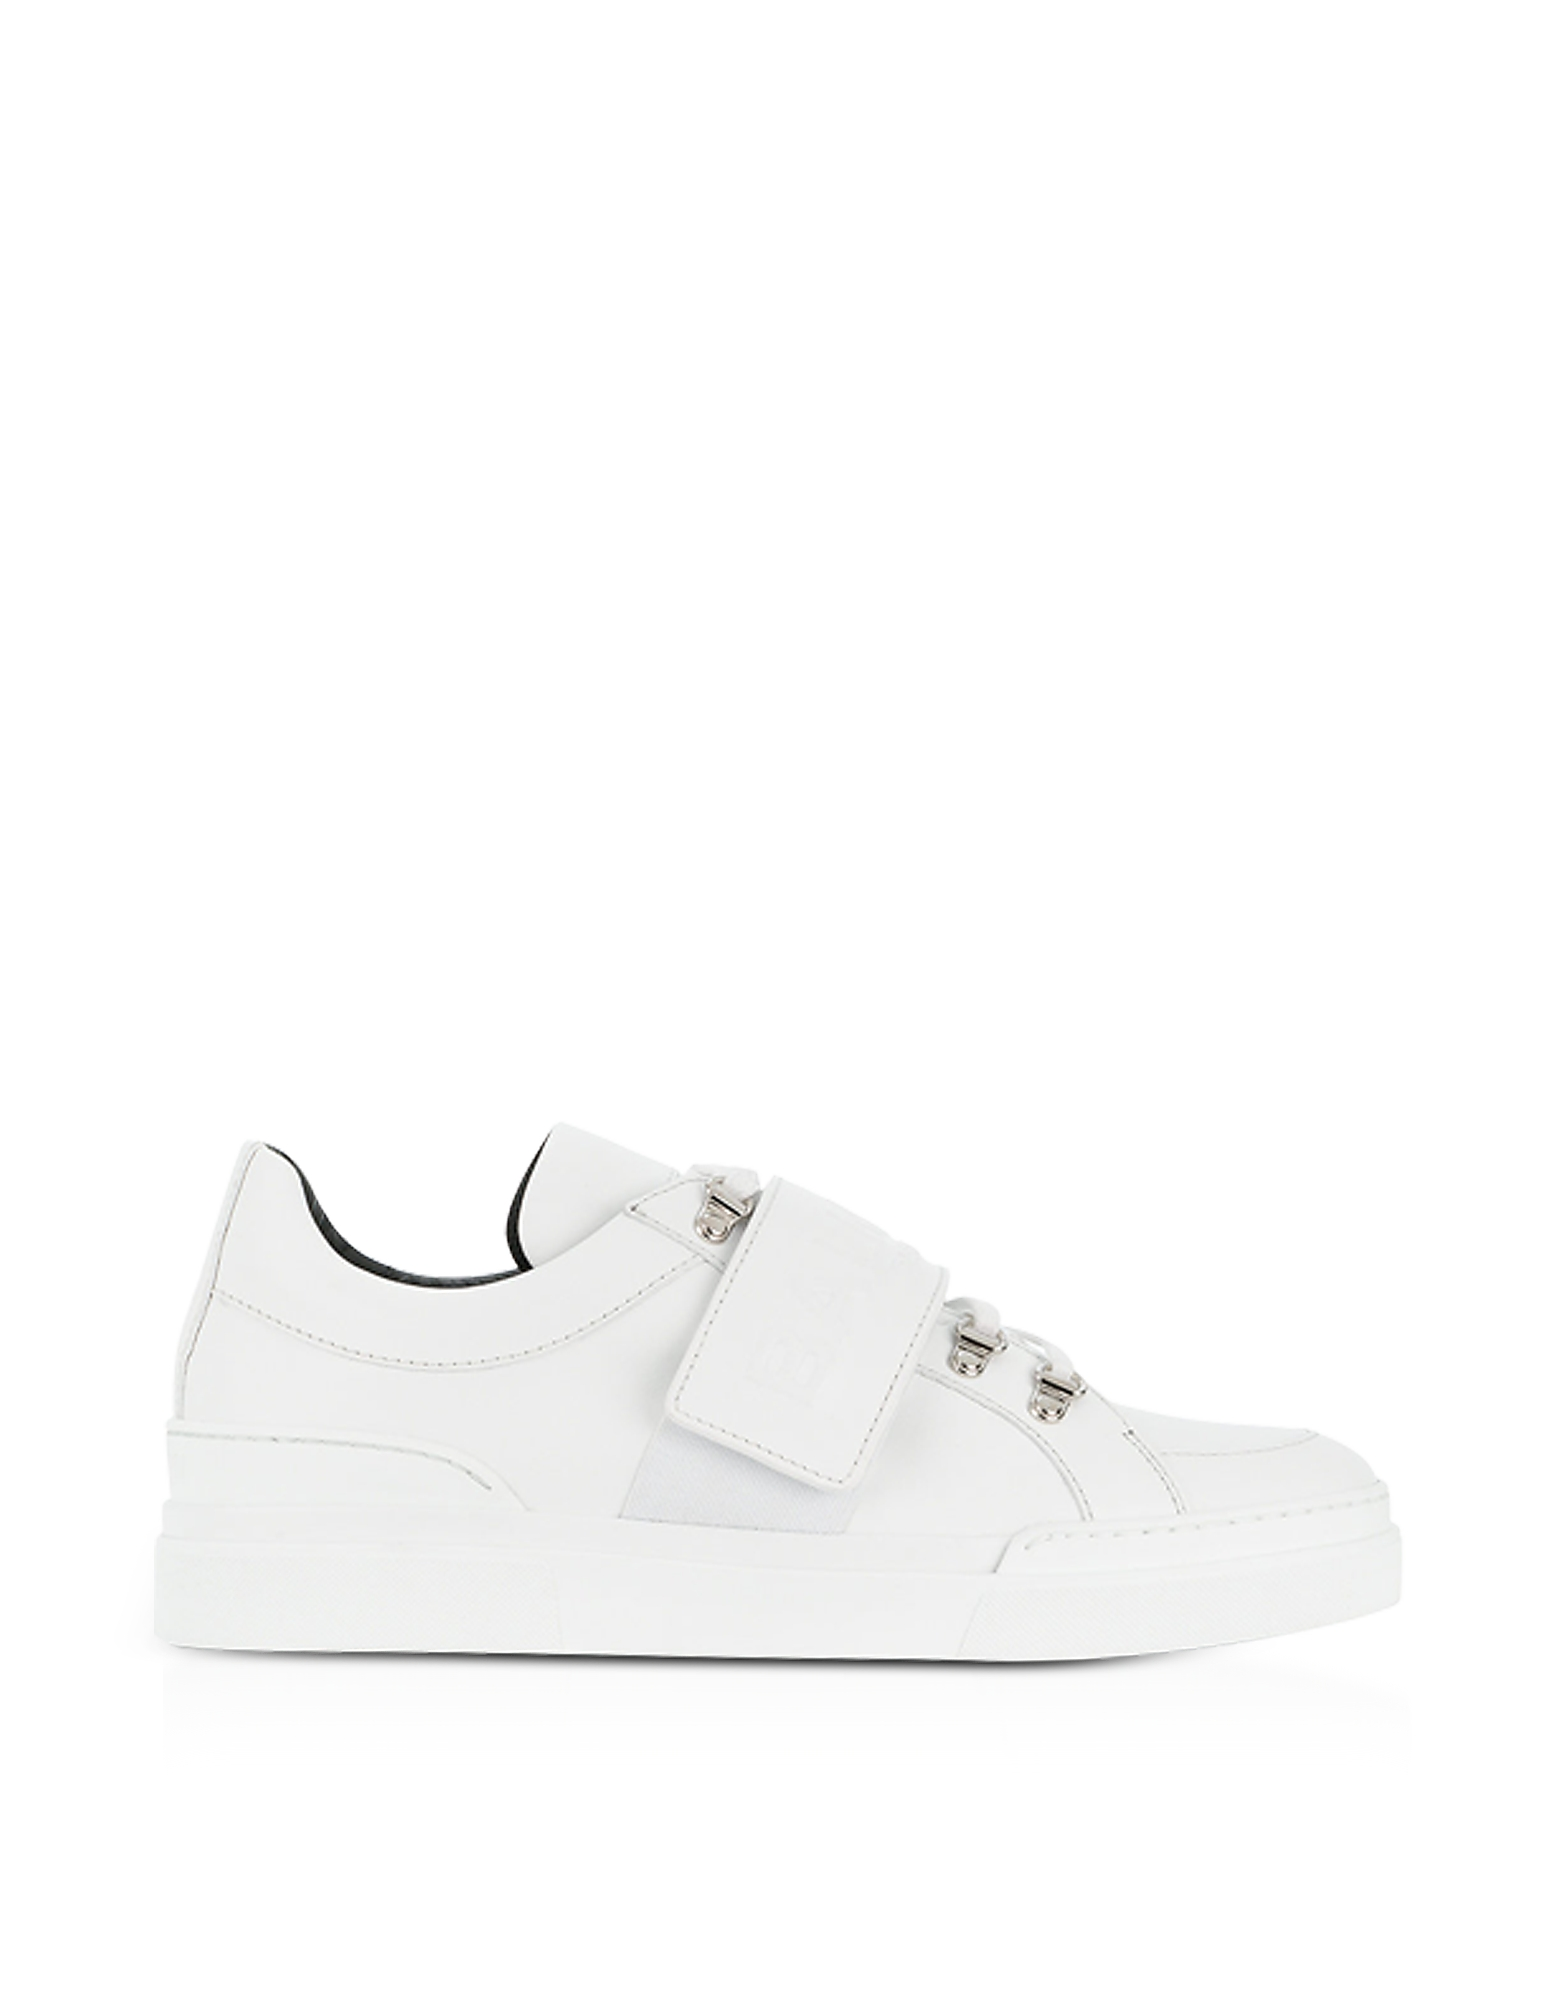 Balmain Shoes, White Leather Low Top Men's Cobalt Sneakers